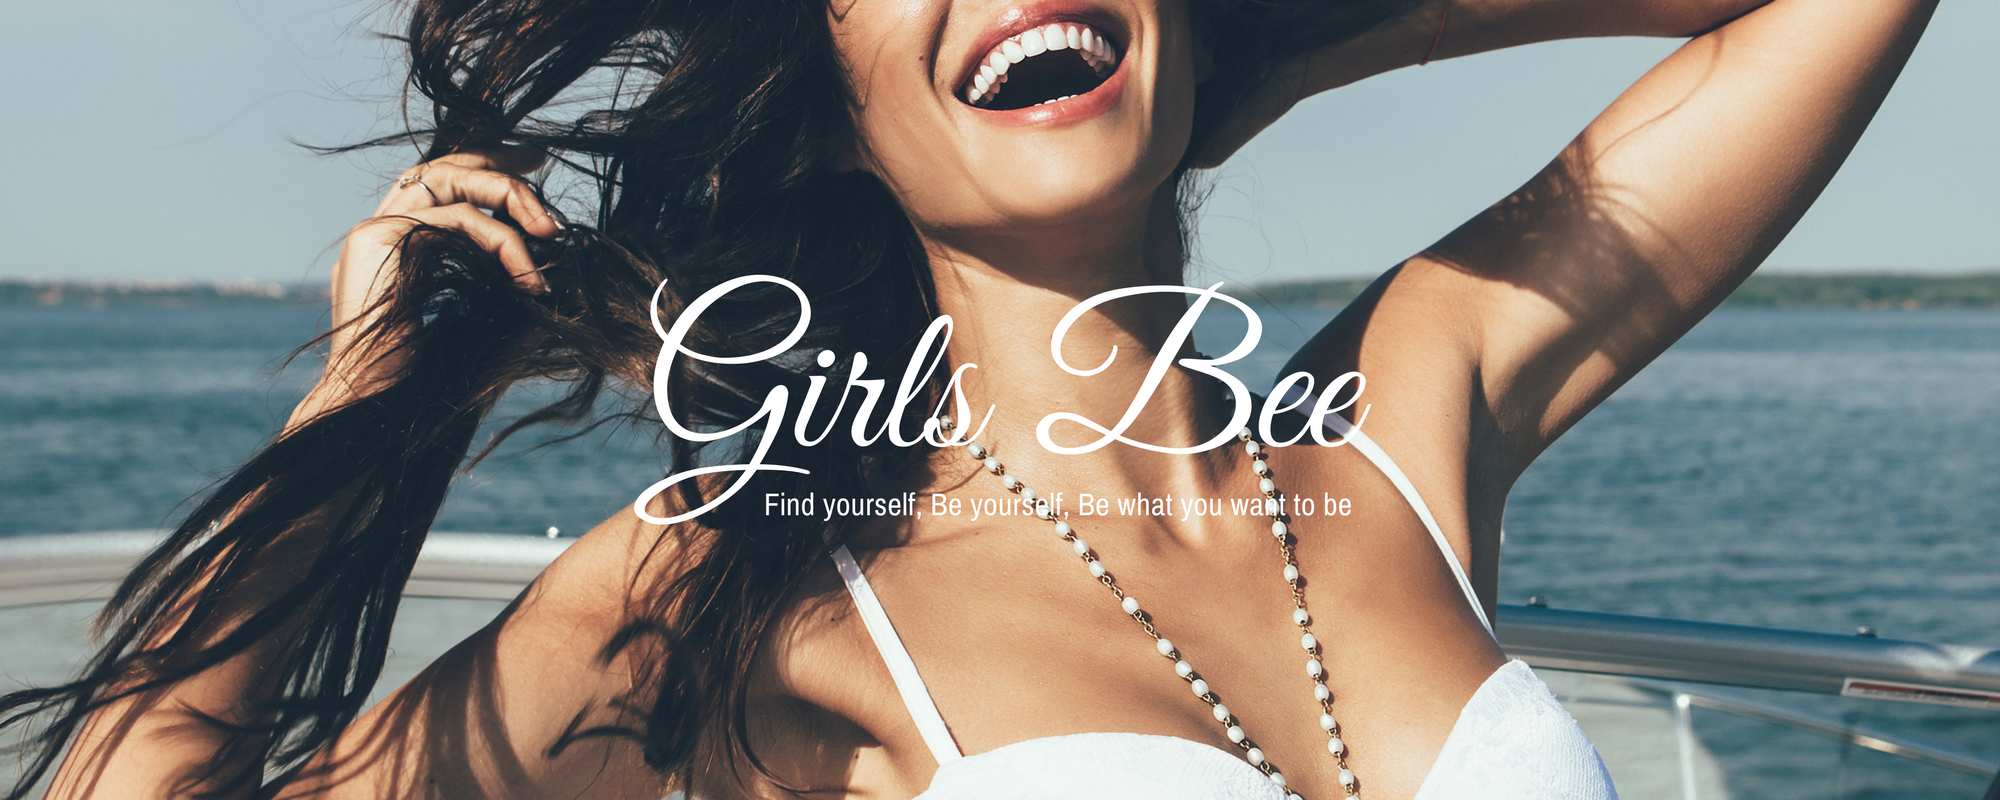 Girls Bee